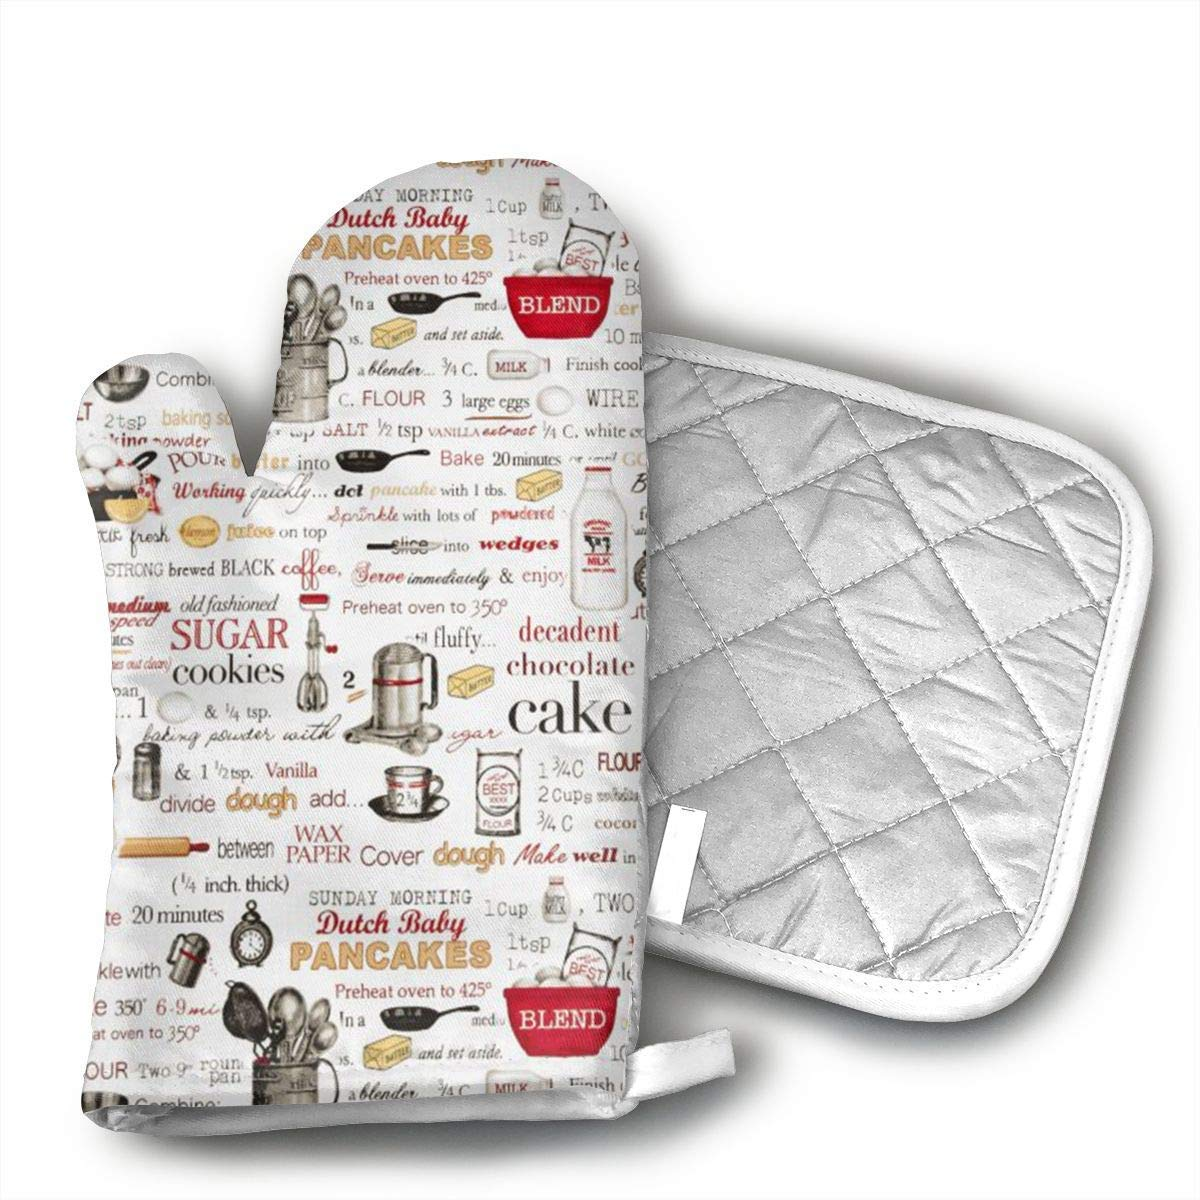 The Cook Recipes Oven Mitts and Pot Holders Set with Polyester Cotton Non-Slip Grip, Heat Resistant, Oven Gloves for BBQ Cooking Baking, Grilling